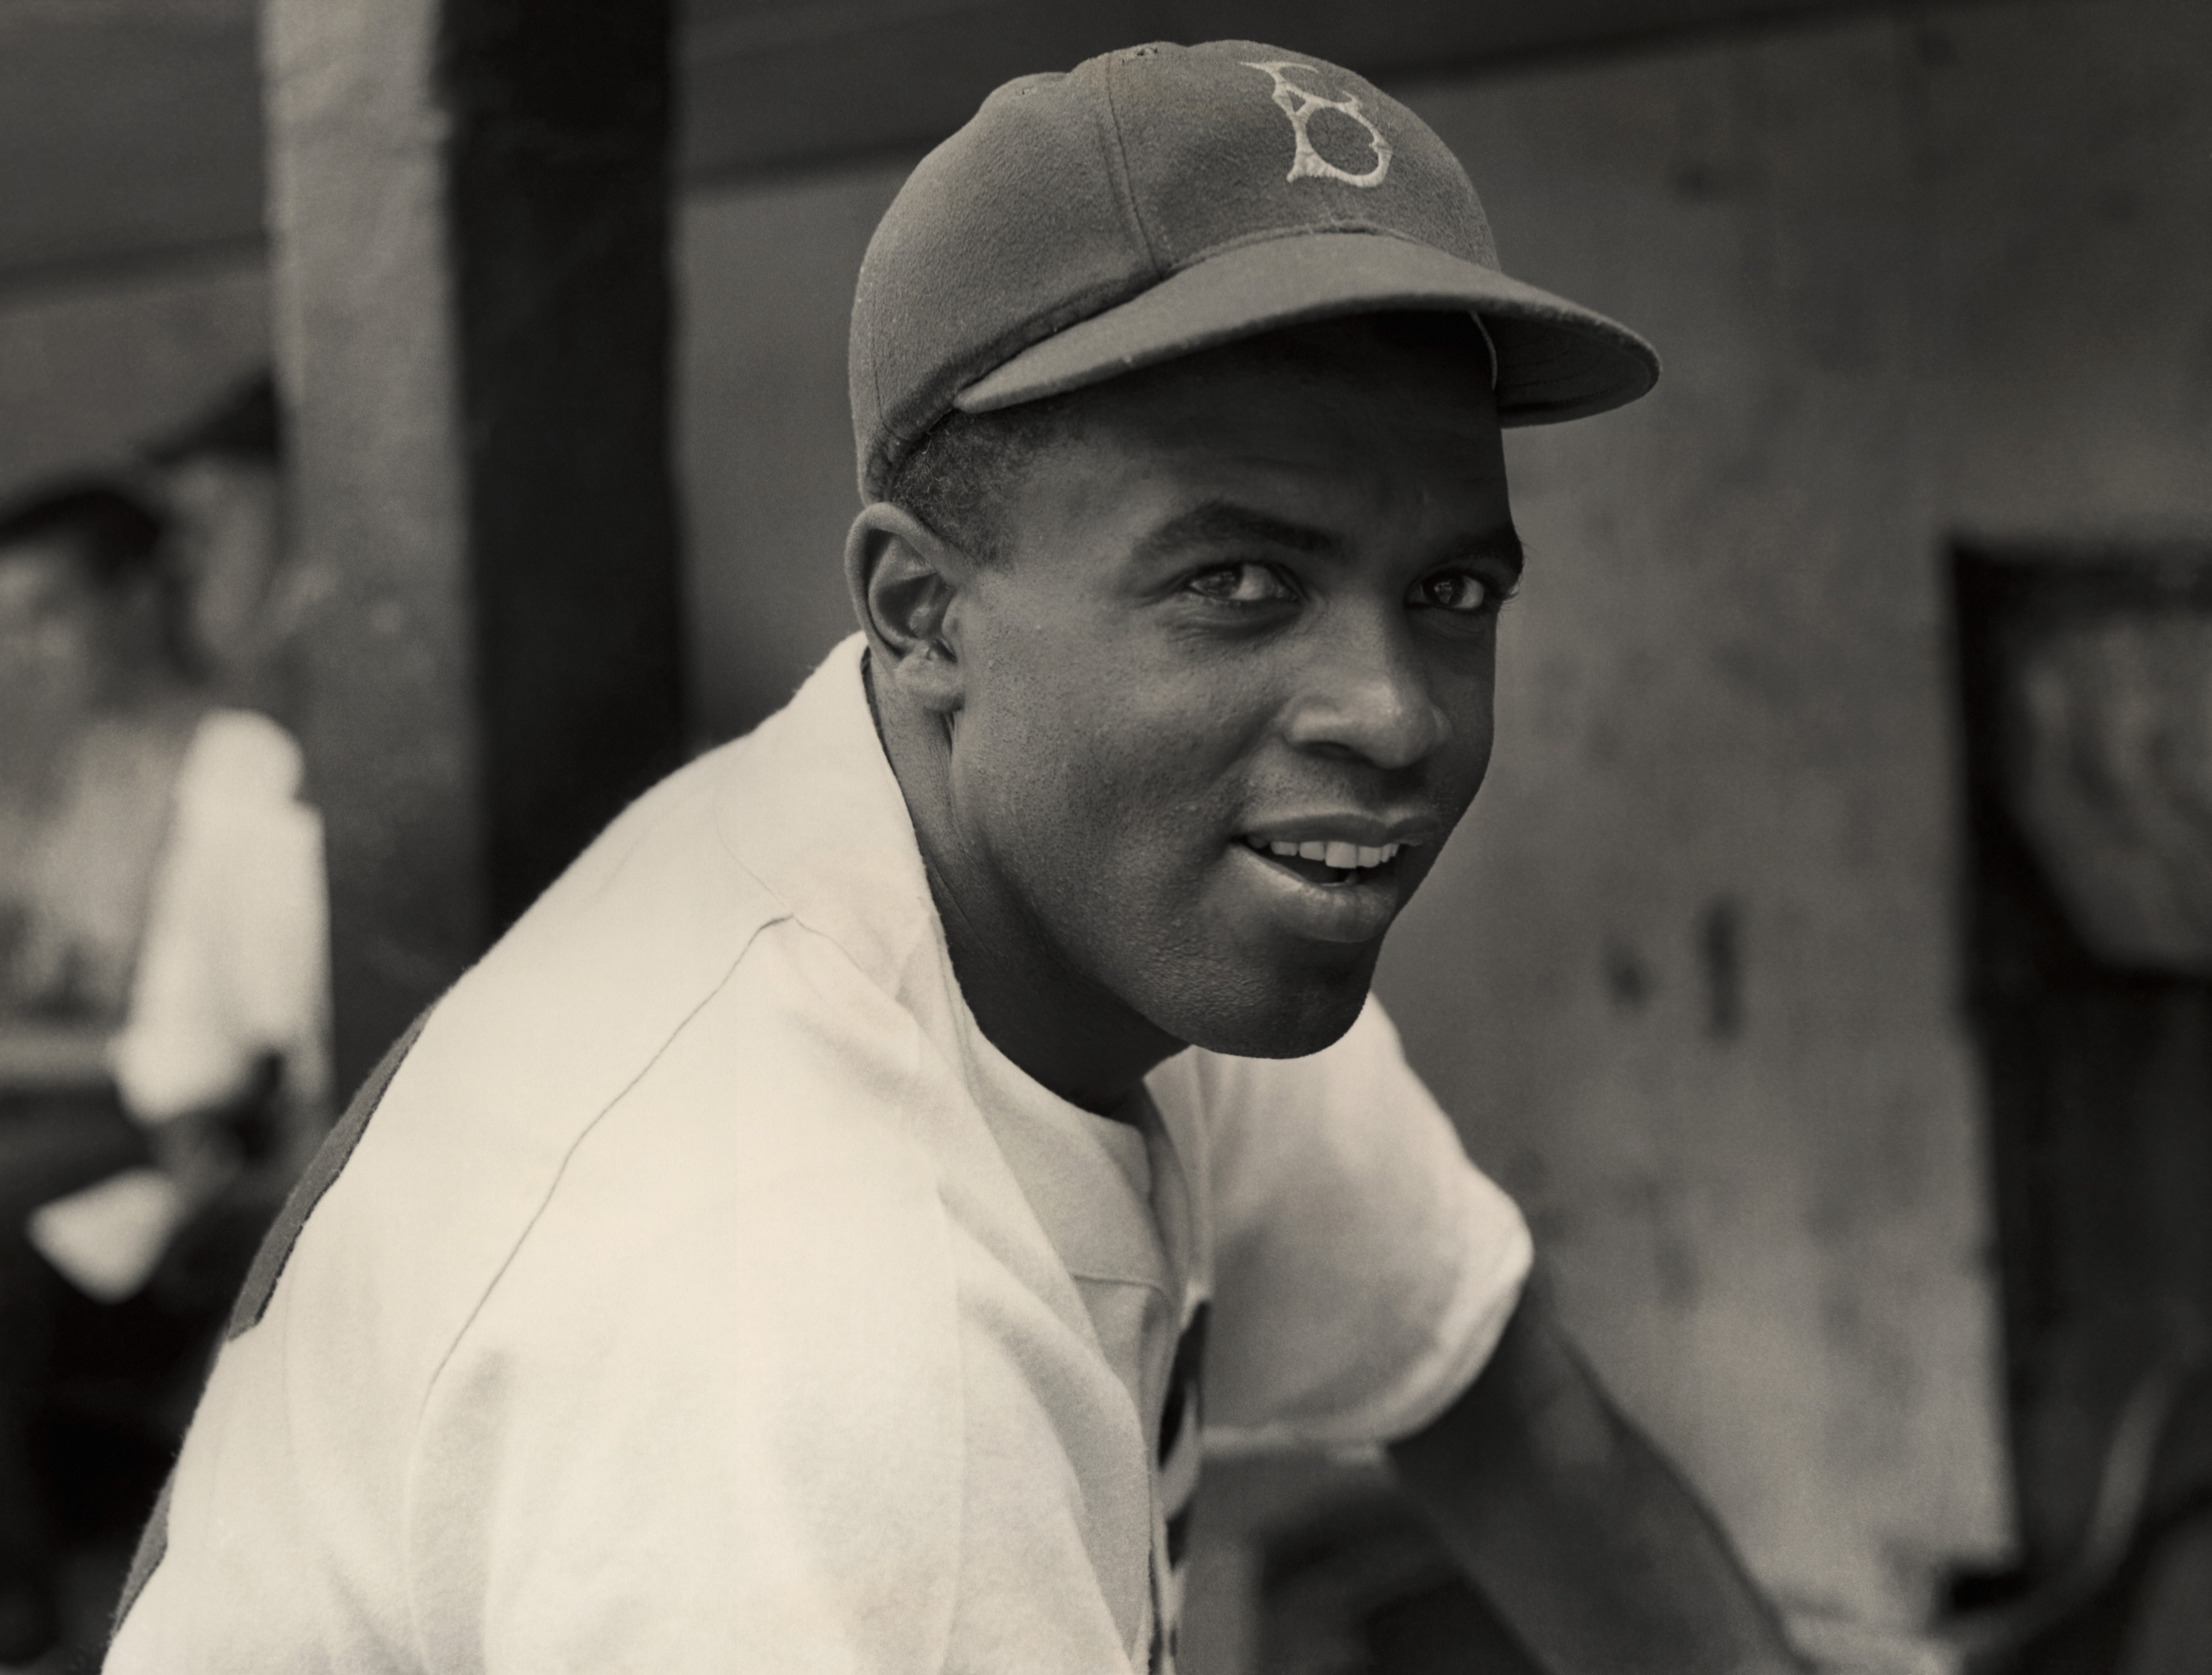 Jackie-Robinson-Signature-Image---Credit---Hulton-ArchiveGetty-Images